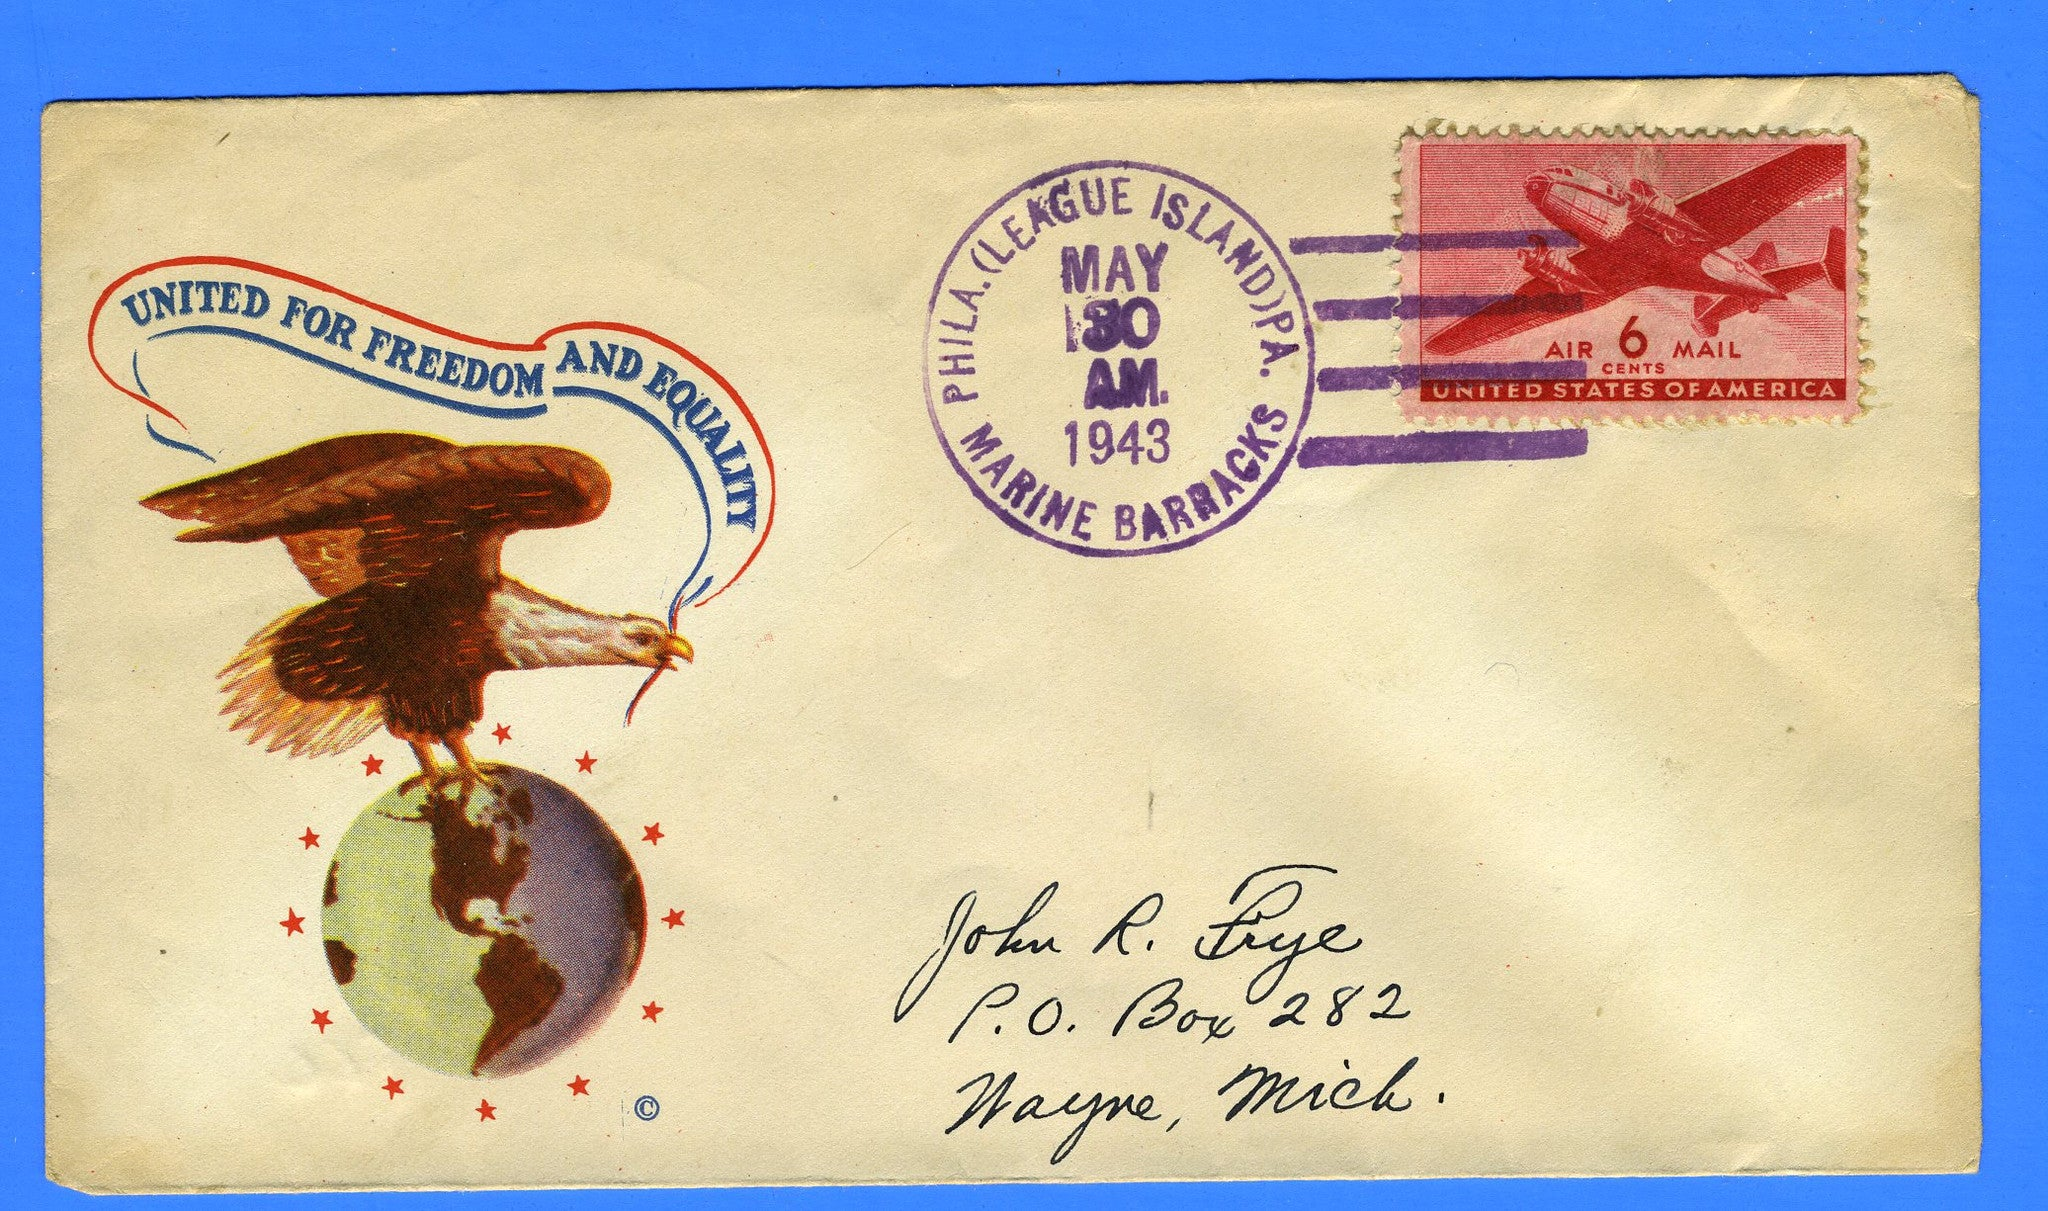 Marine Barracks League Island Memorial Day May 30, 1943 - Minkus Patriotic Cover